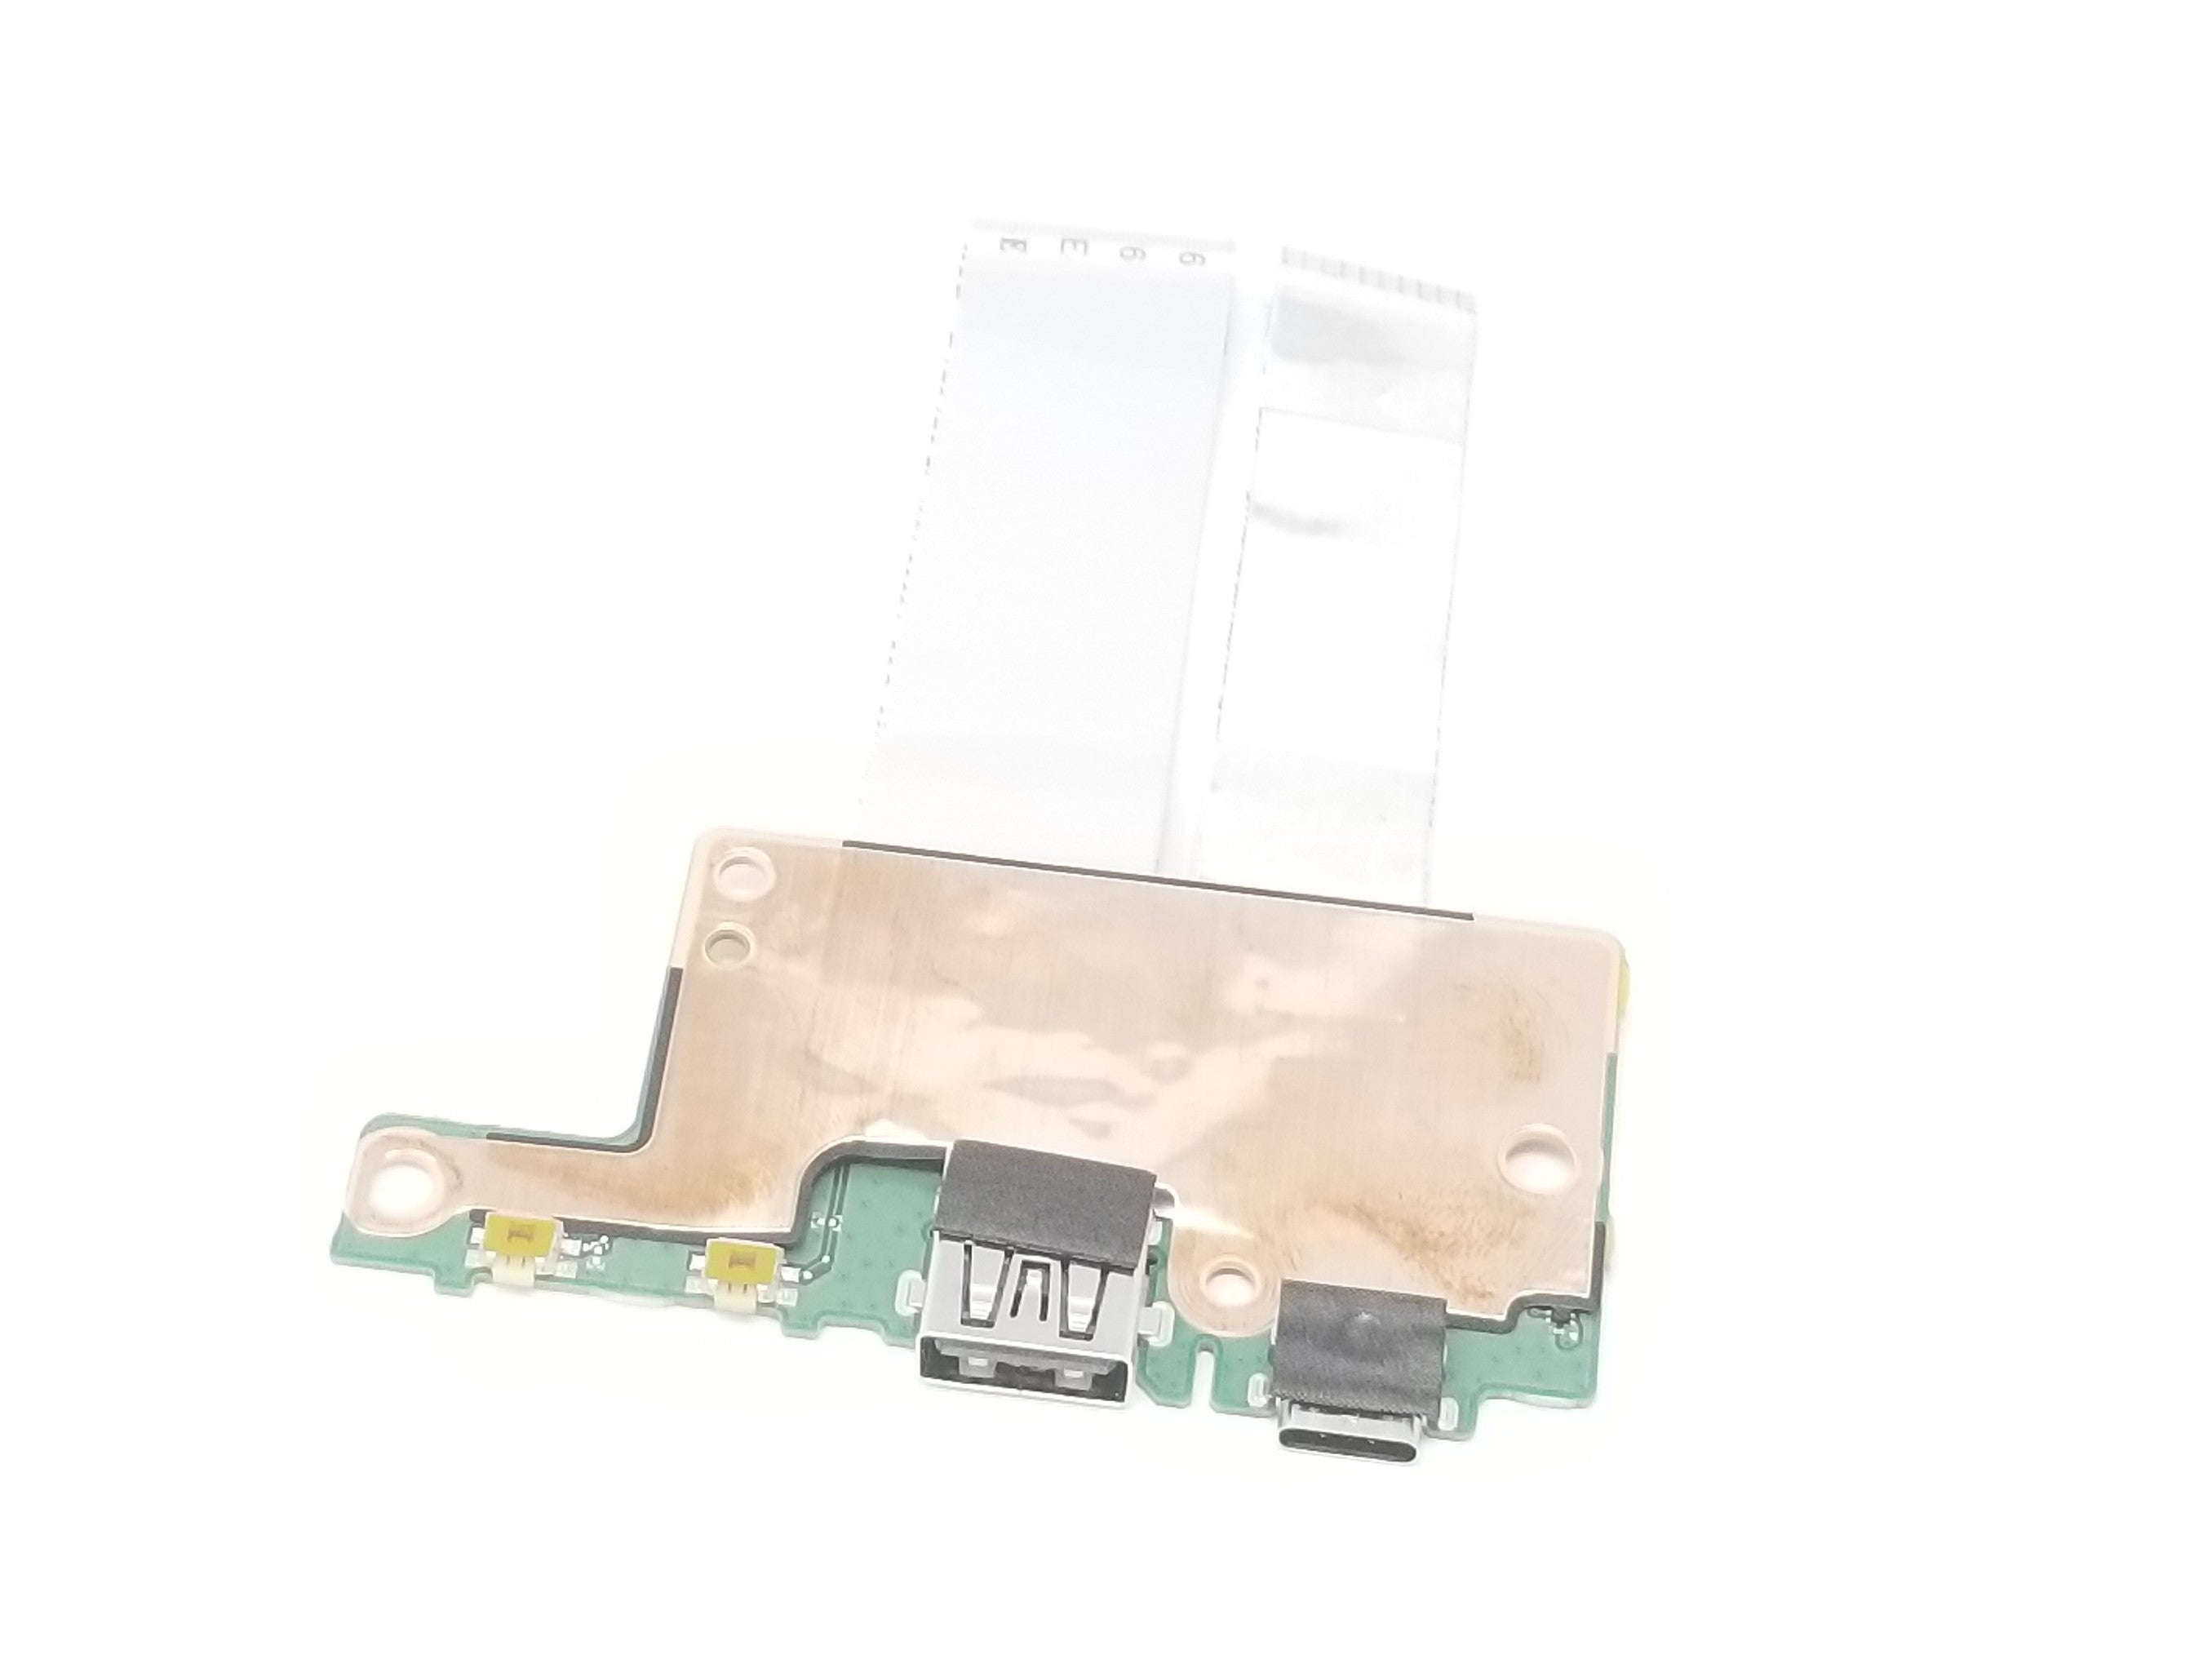 Asus Chromebook 11 C213SA USB Volume Button Board